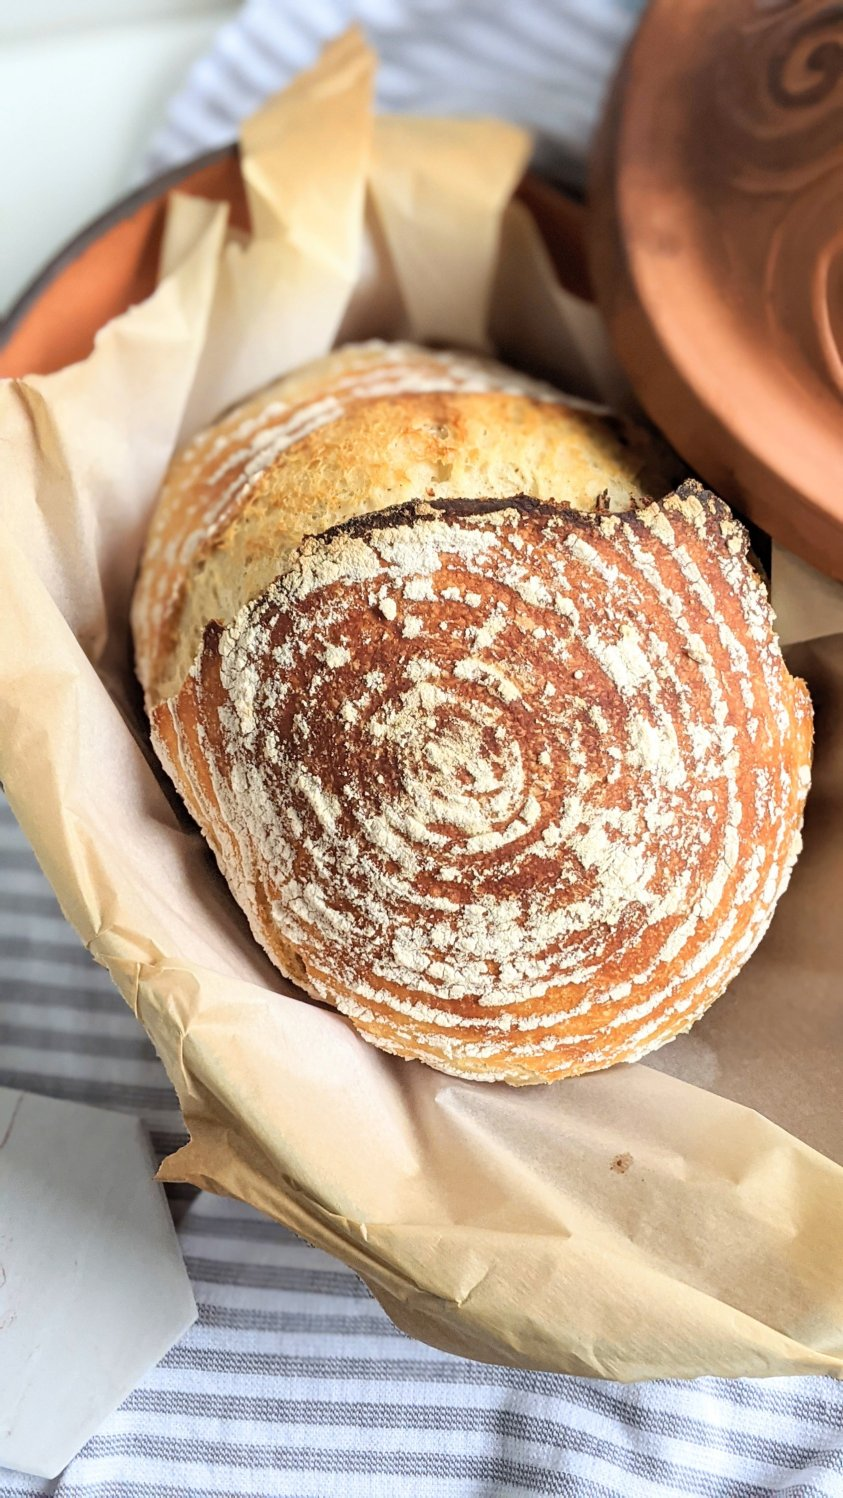 vegan sourdough bread no dutch oven healthy easy sourdough from starter disccard recipes to make that aren't sweet savory appetizers for holiday impress your guests